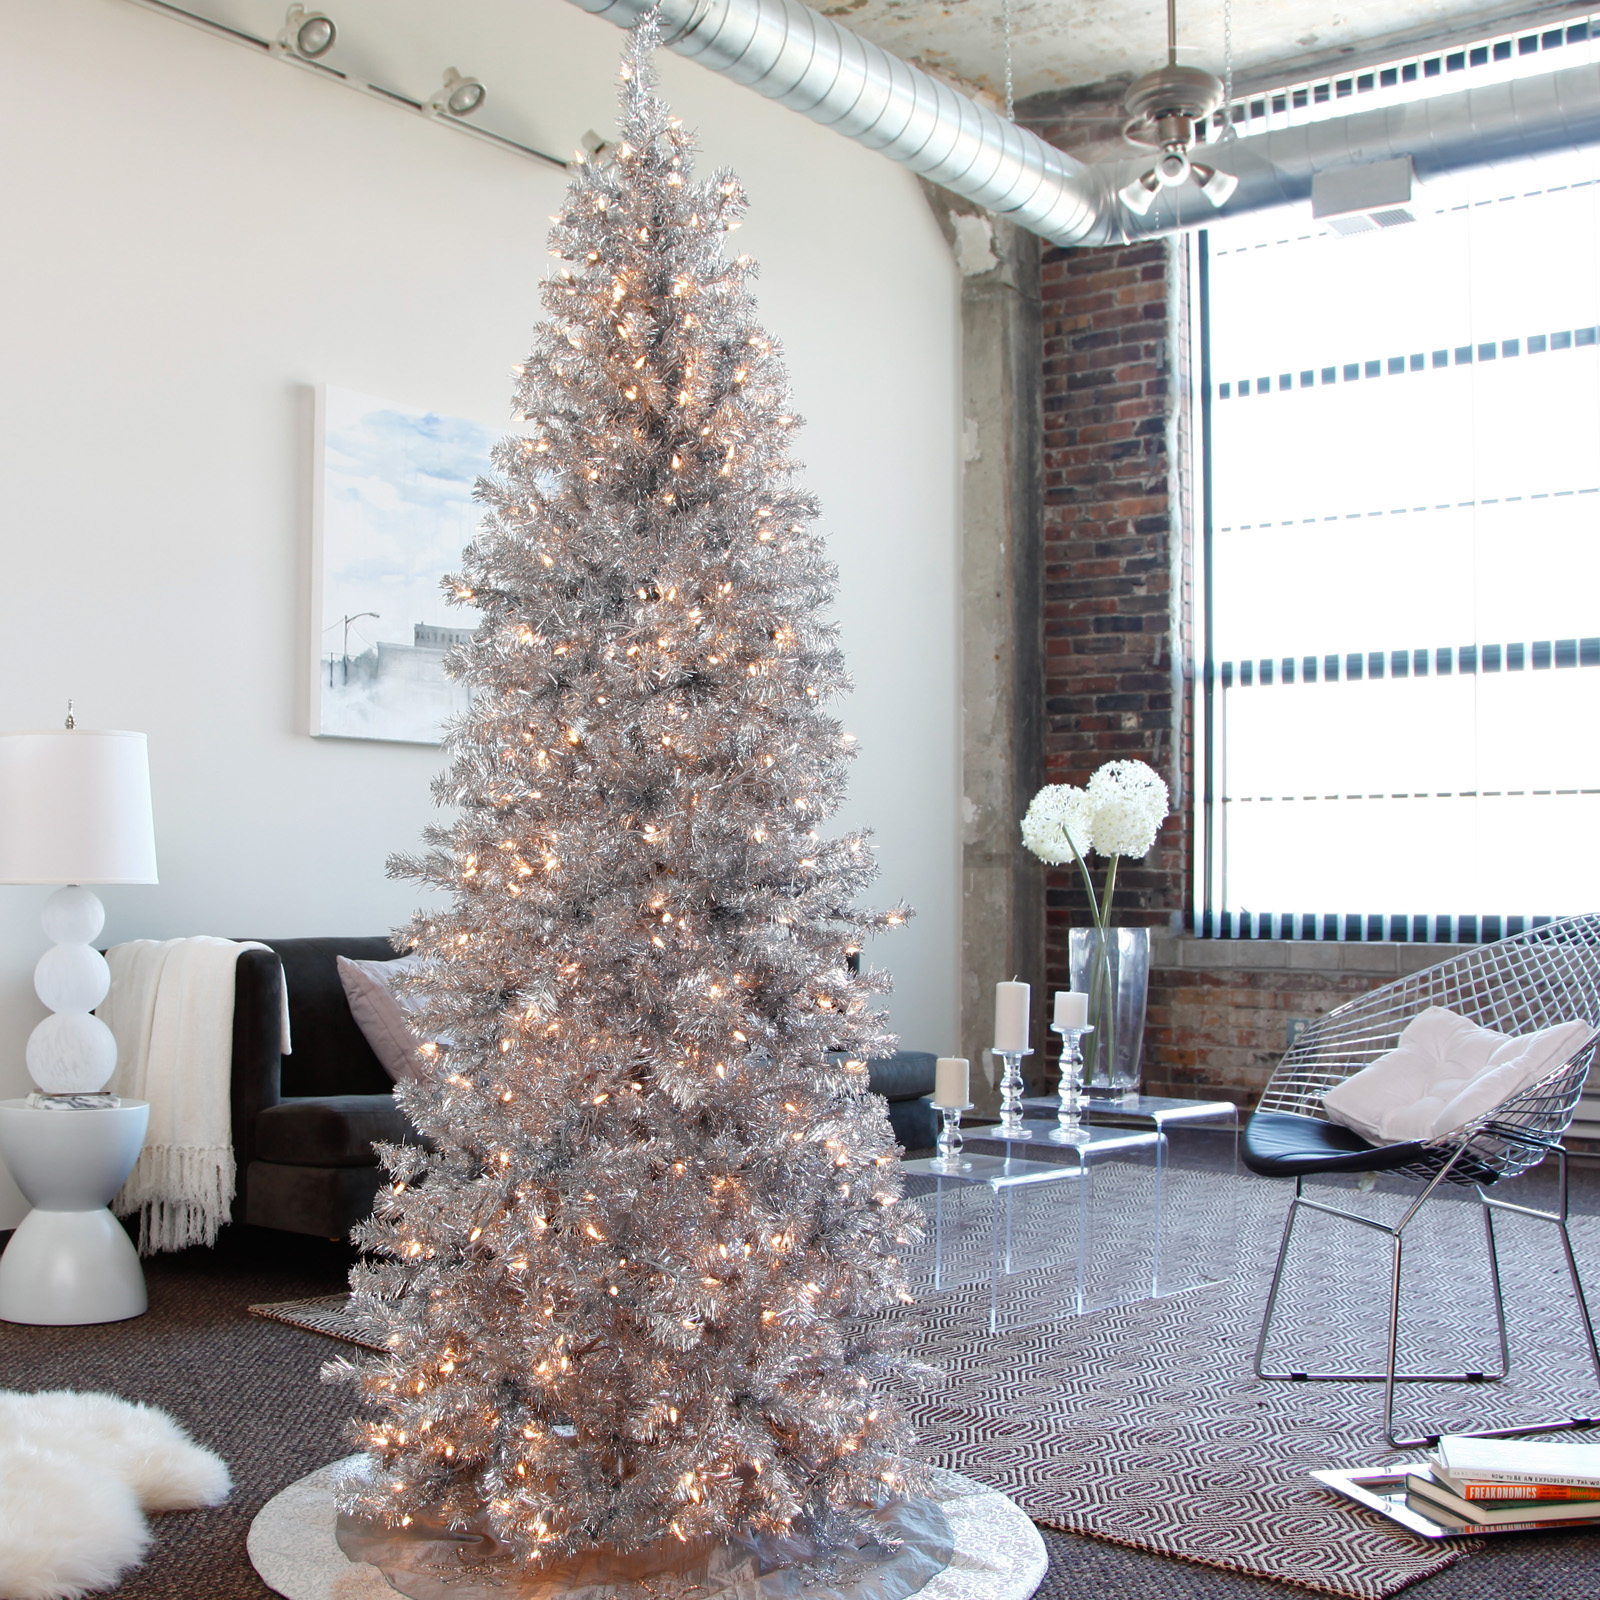 21 silver christmas tree dcor ideas digsdigs - Decorating With Silver And Gold For Christmas